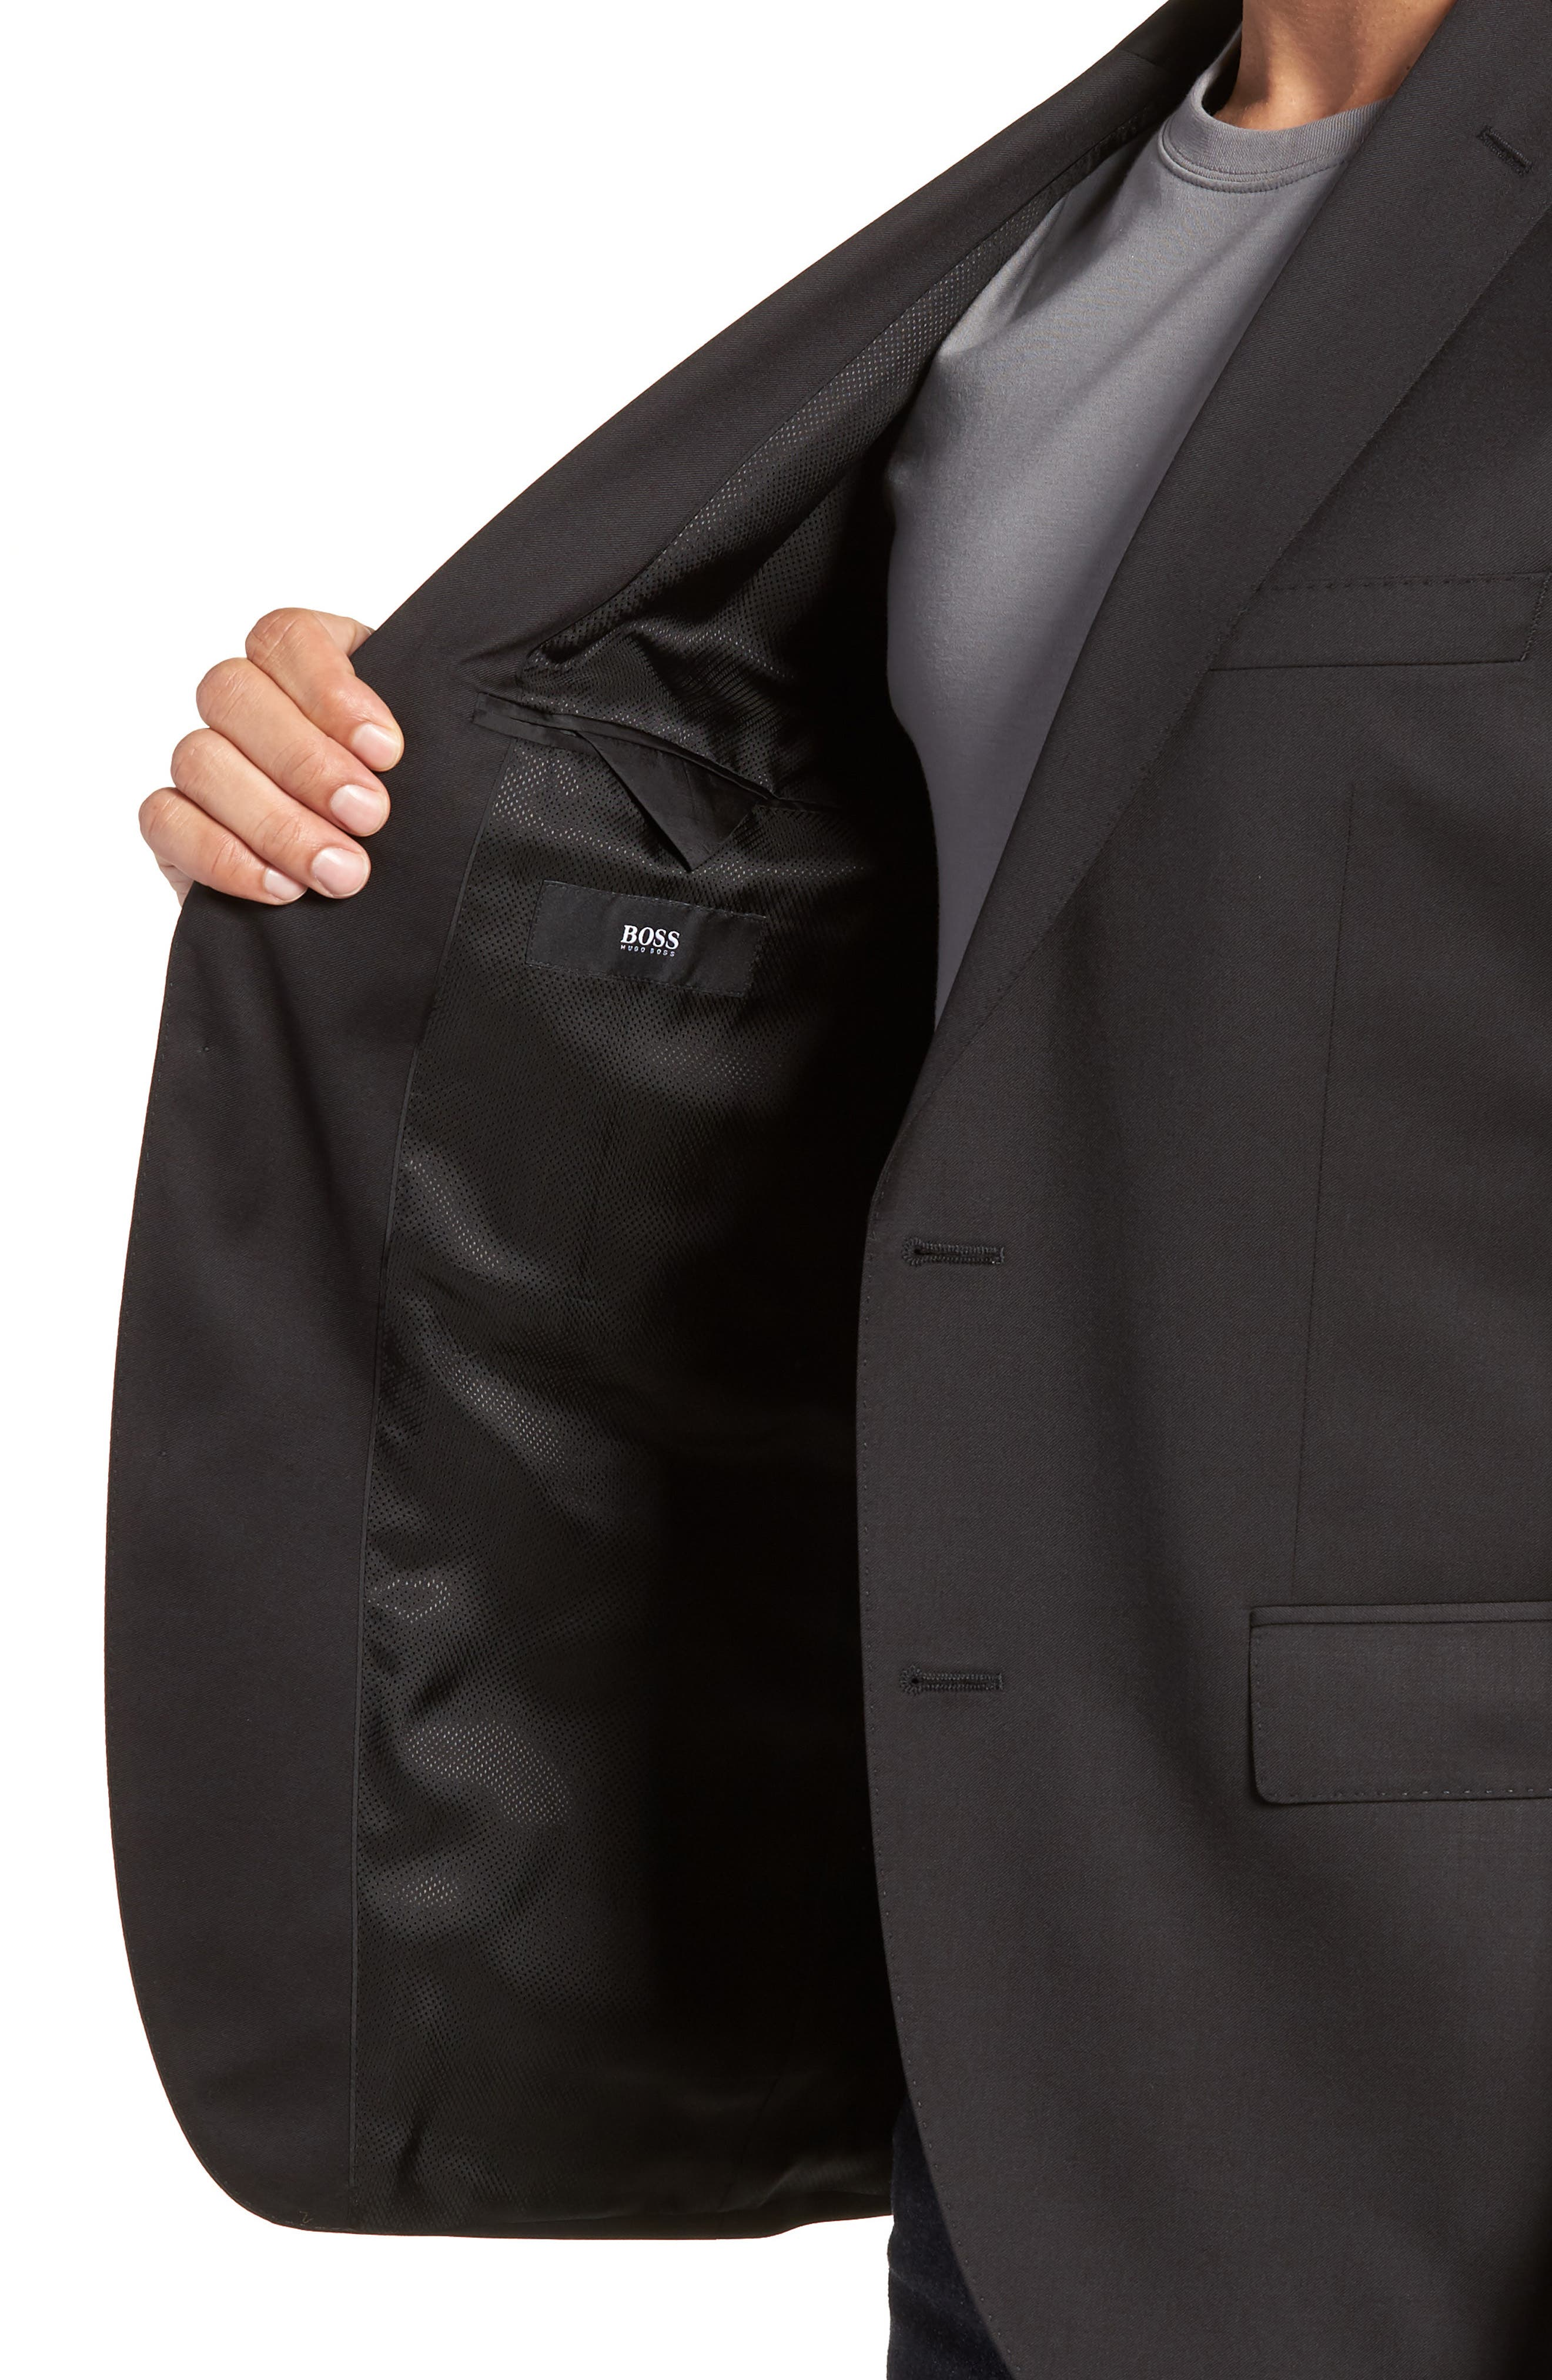 BOSS, Johnstons CYL Classic Fit Solid Wool Sport Coat, Alternate thumbnail 5, color, BLACK